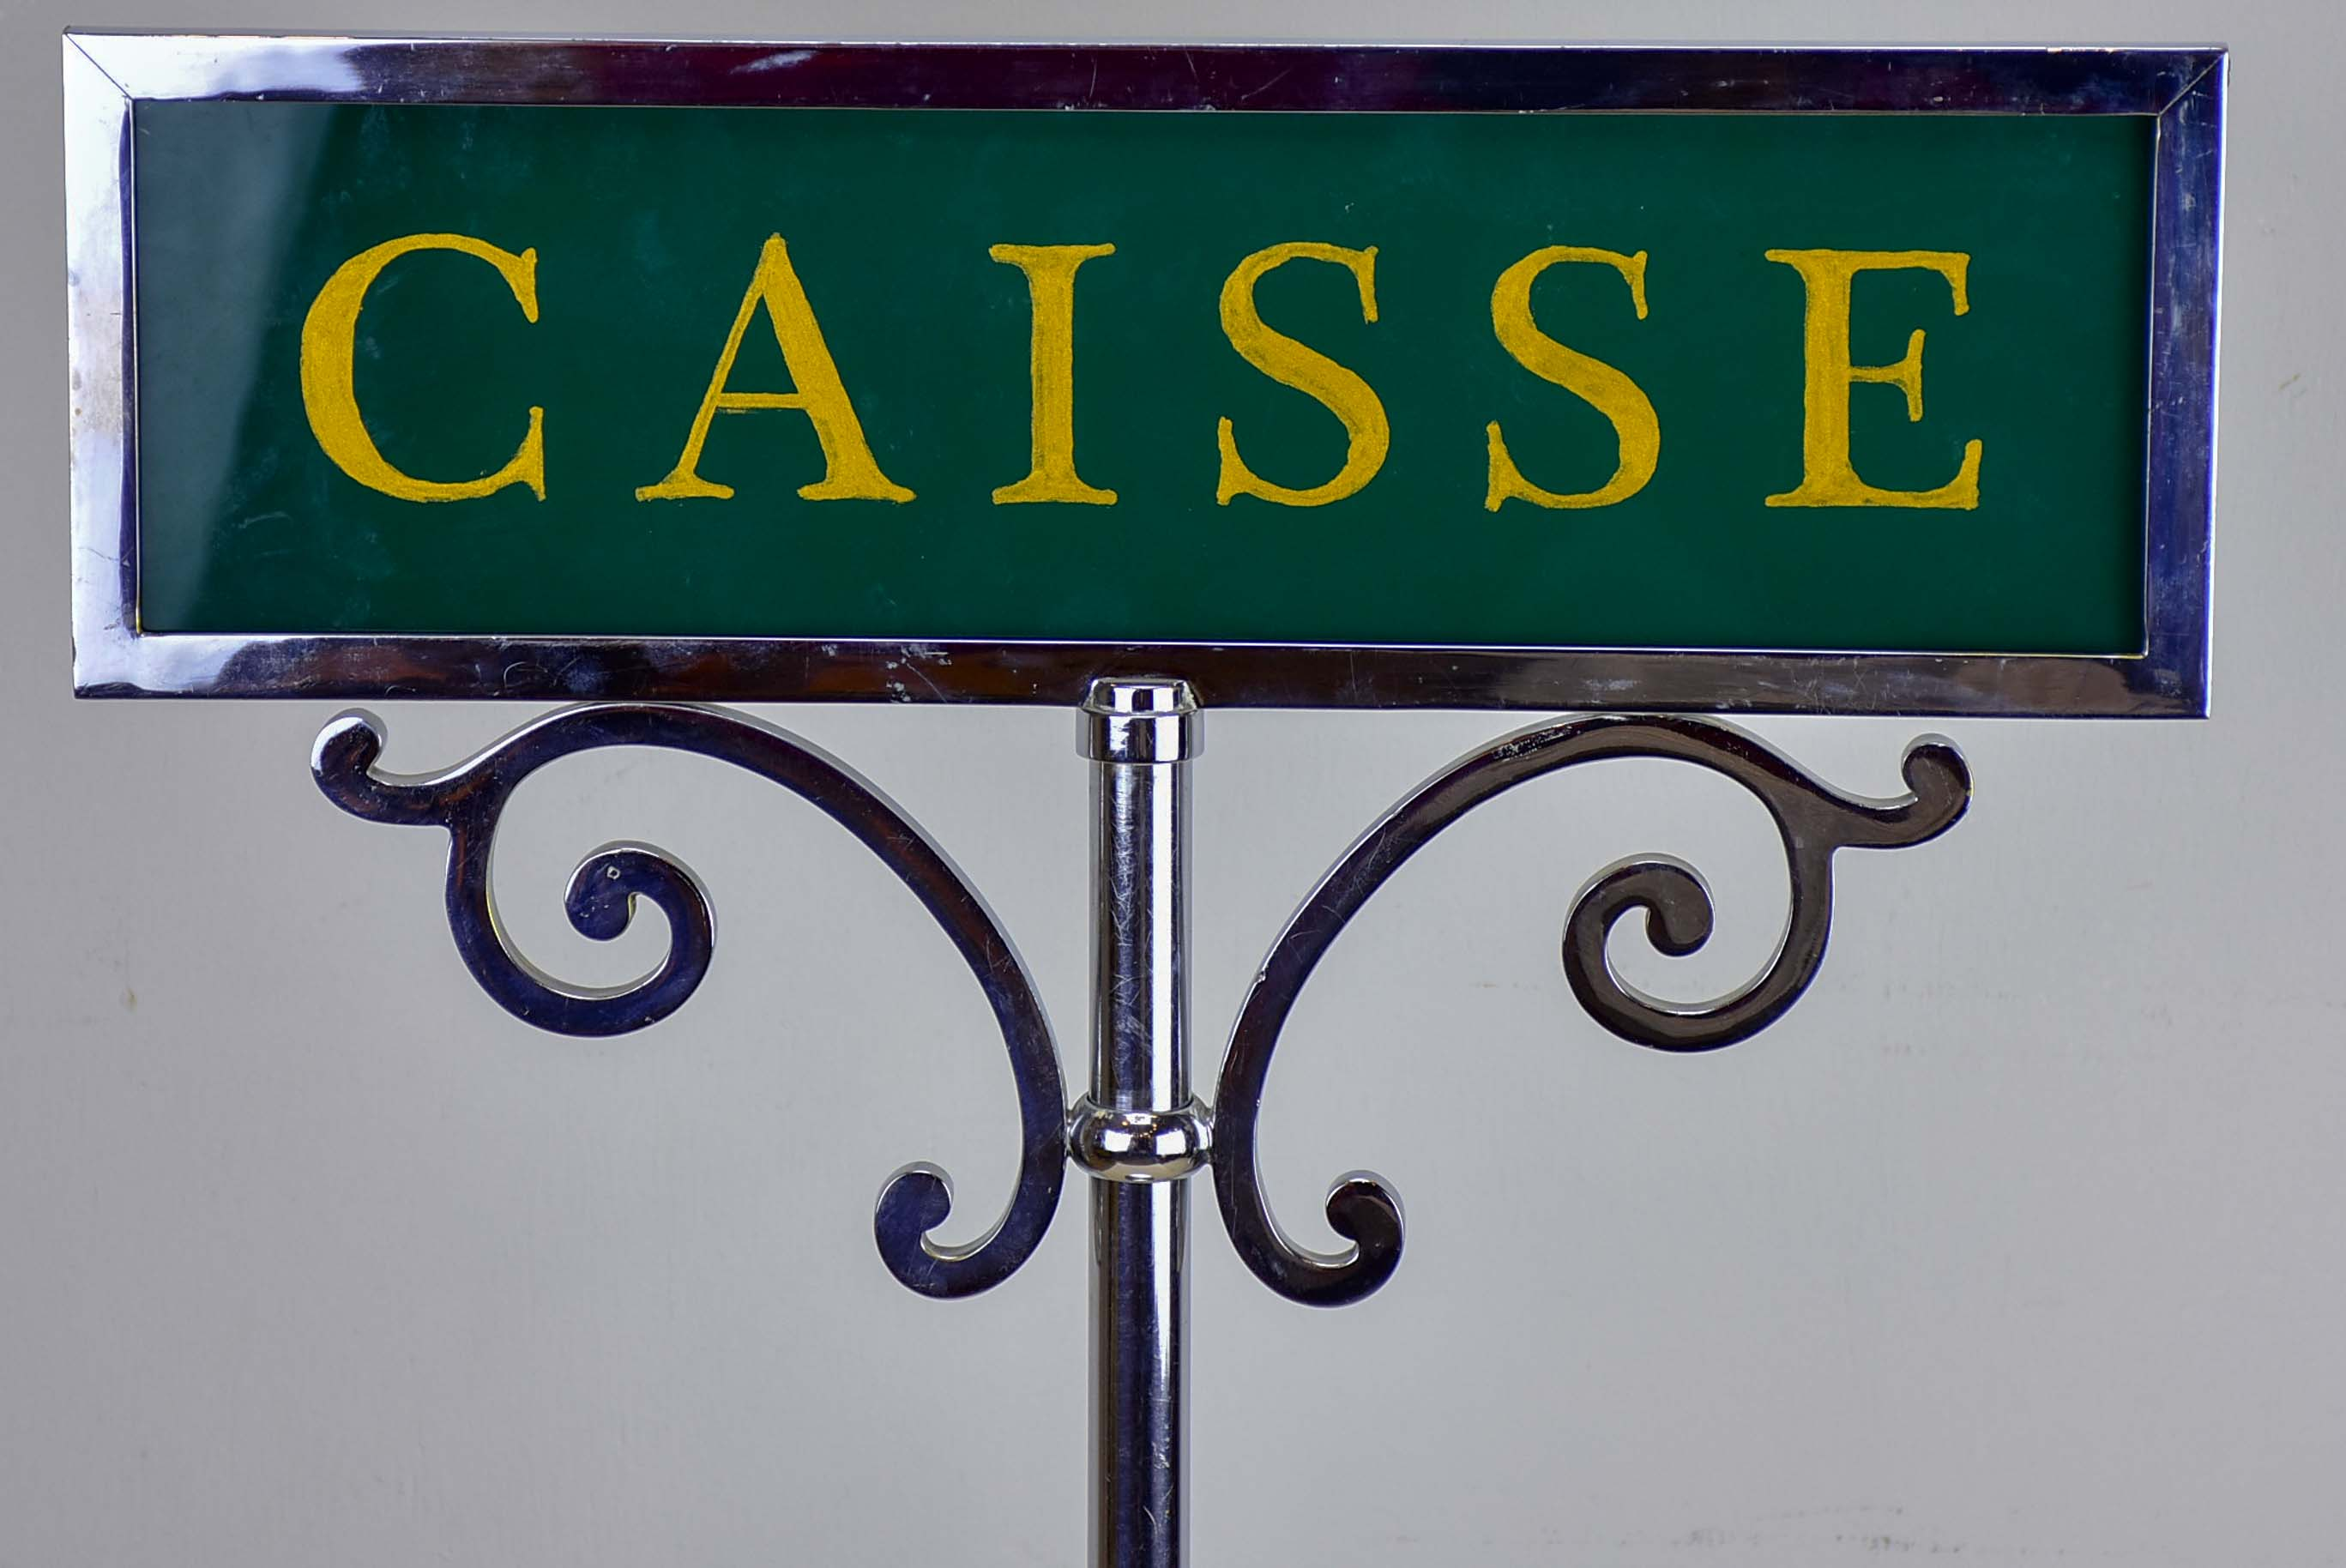 'Caisse' cash register sign